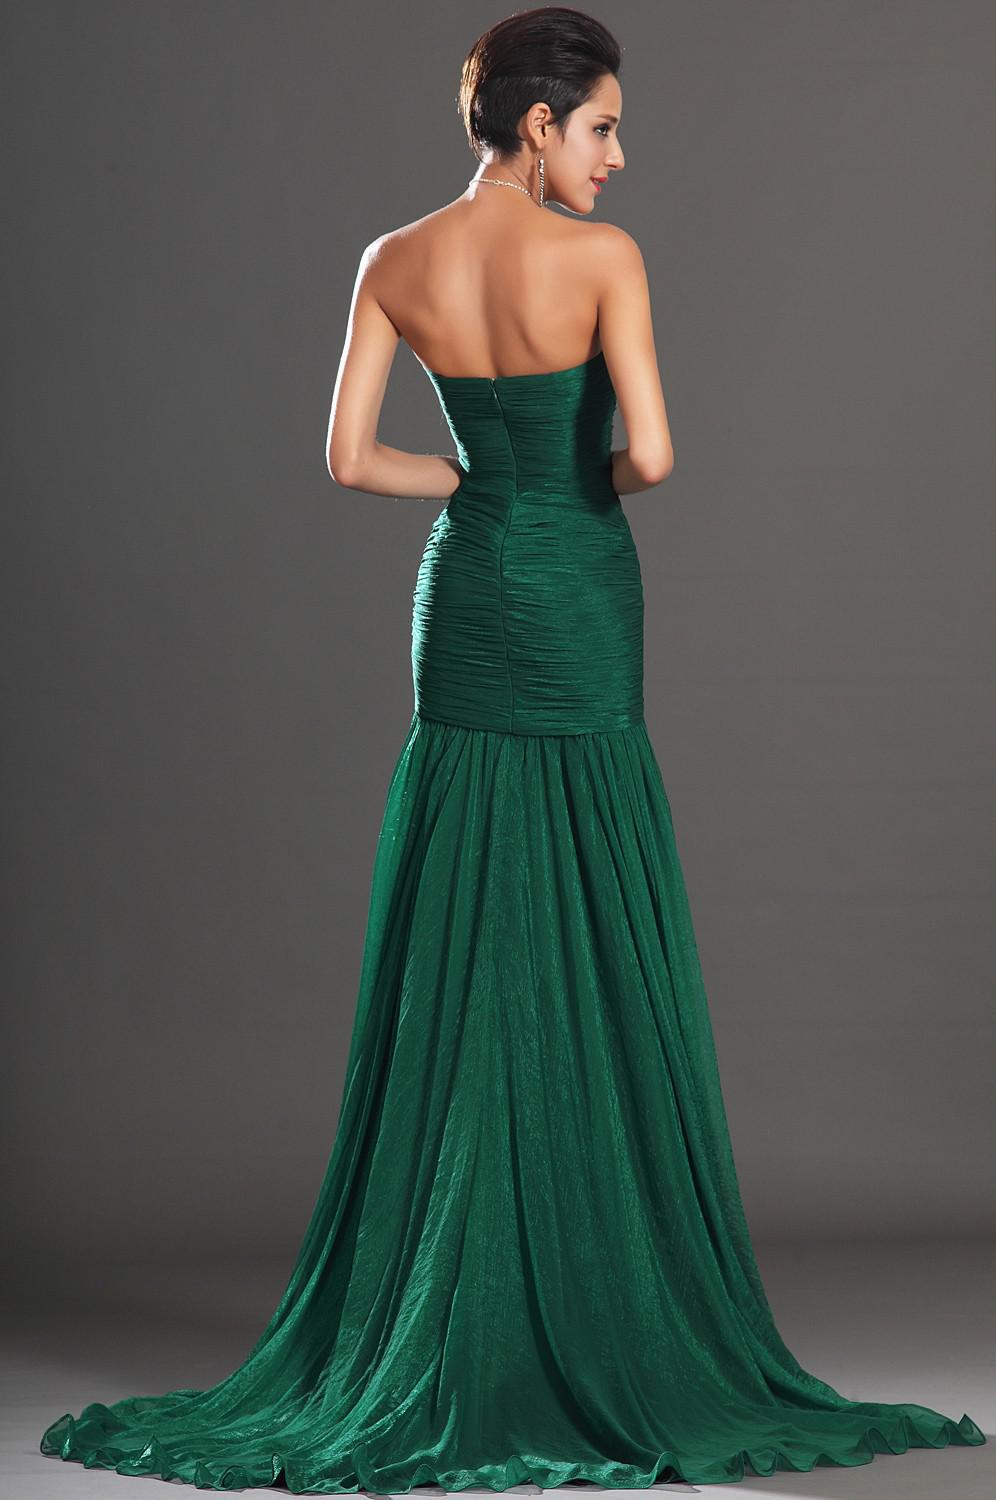 dress macys Picture - More Detailed Picture about 2015 Emerald ...